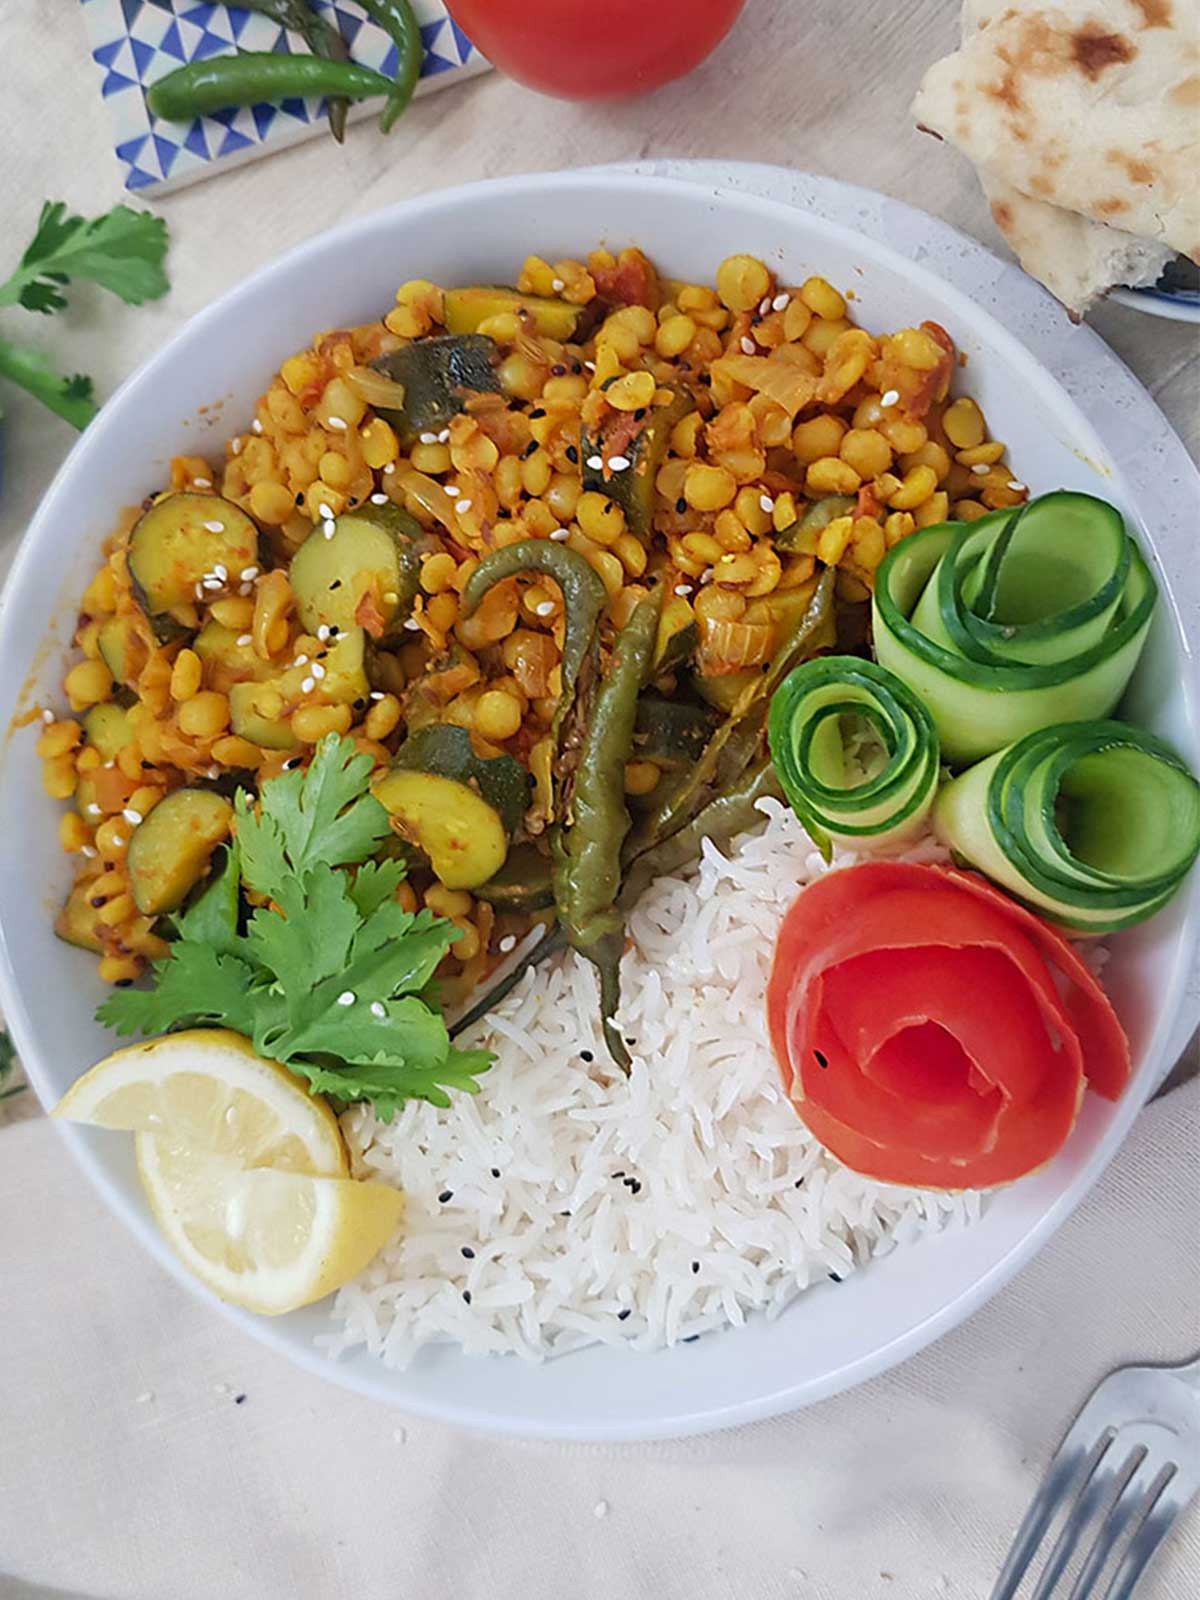 Yellow split peas with zucchini served in a bowl